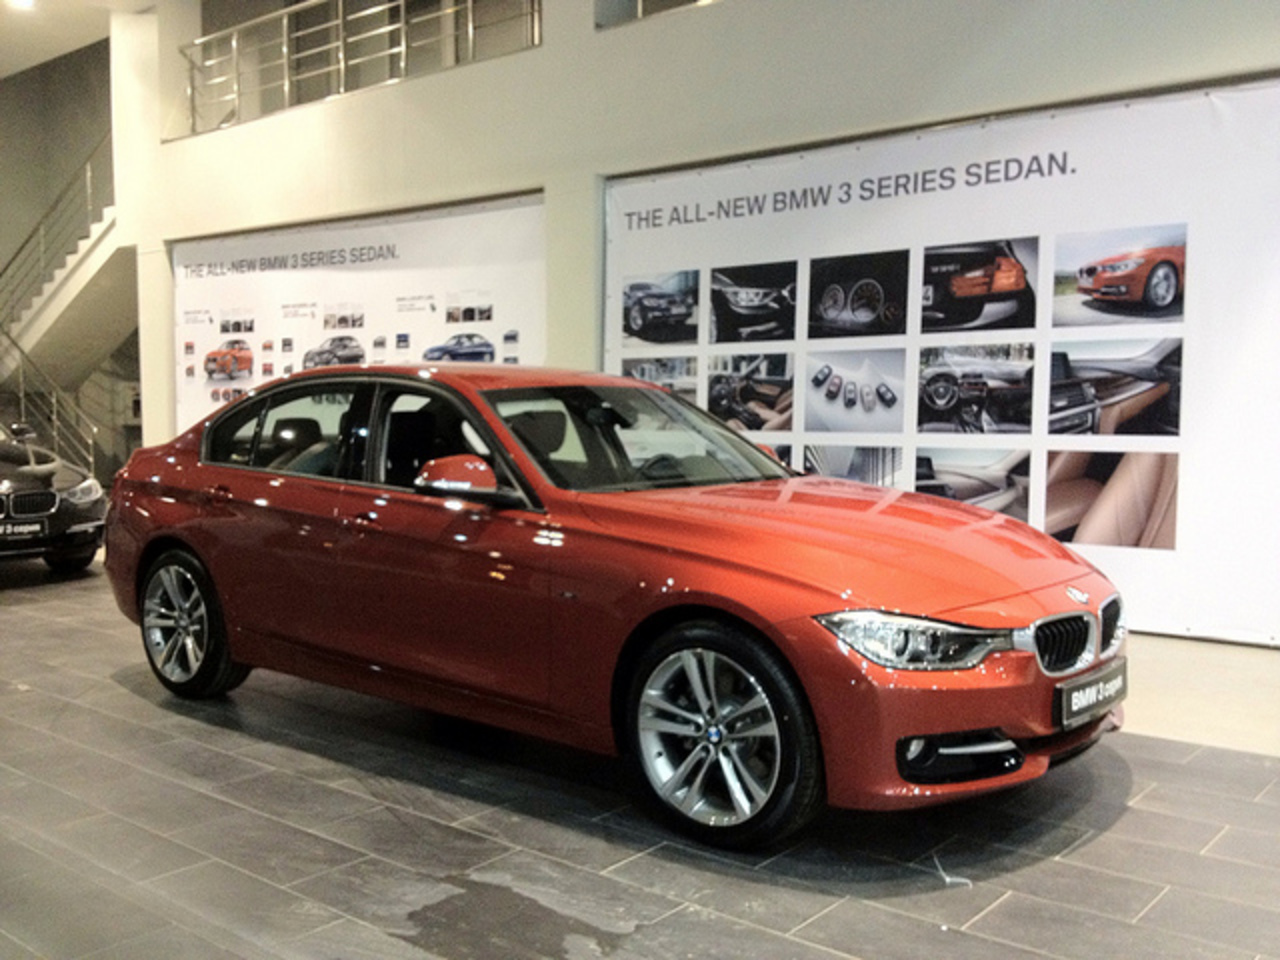 BMW 3 series 2012 | Flickr - Photo Sharing!